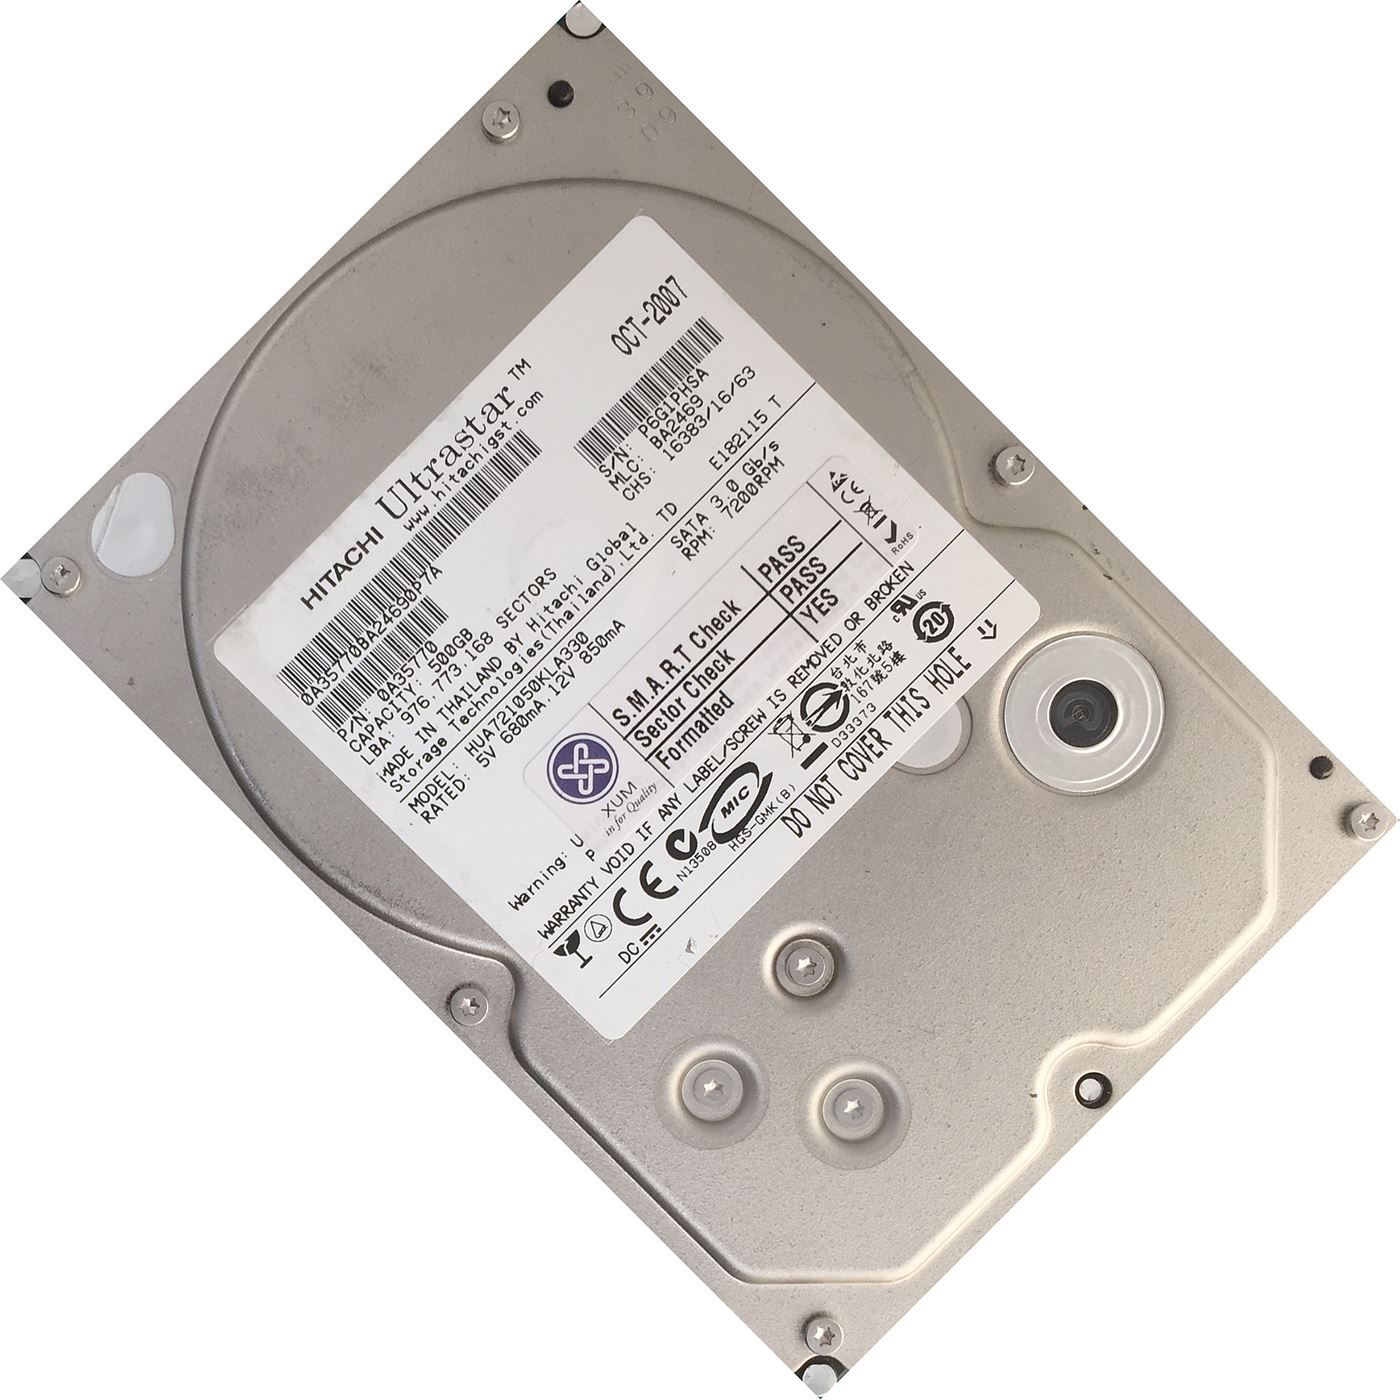 500GB-3-5-034-SATA-Hard-Drive-Internal-HDD-DESKTOP-COMPUTER-PC-CCTV-DVR-DISK-LOT miniatuur 3